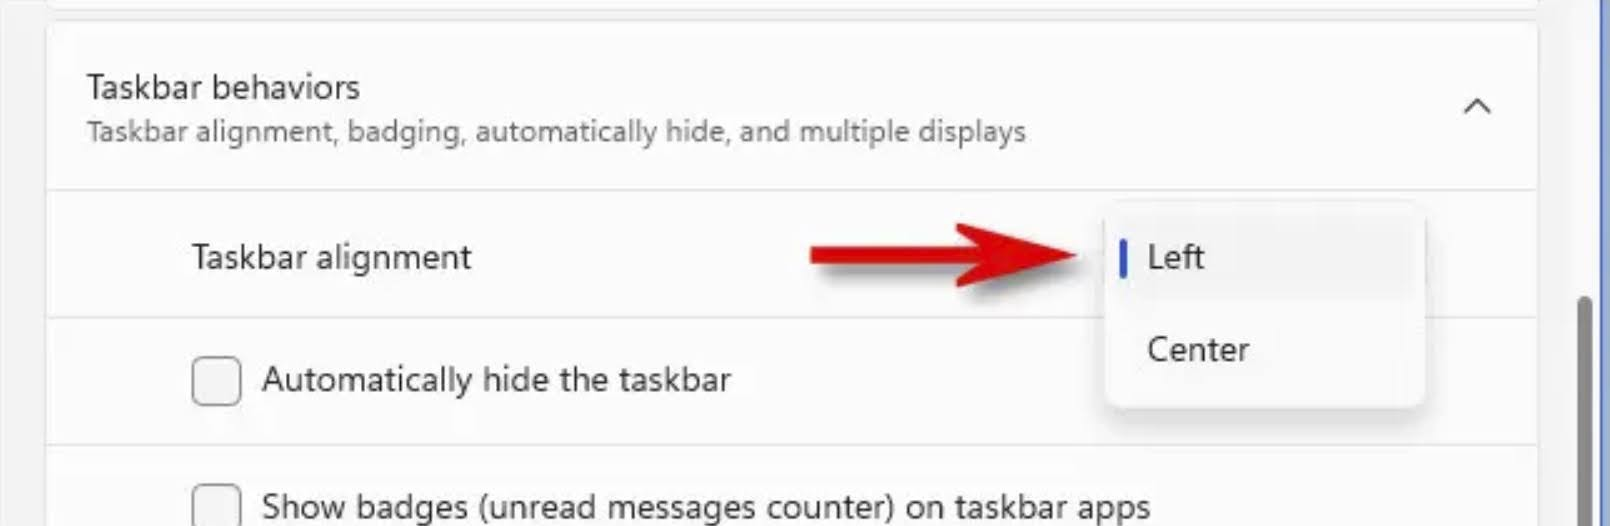 Select the Left option from the drop-down menu next to the Taskbar Alignment option. This will change the alignment of the taskbar from the default center to the left of the screen.